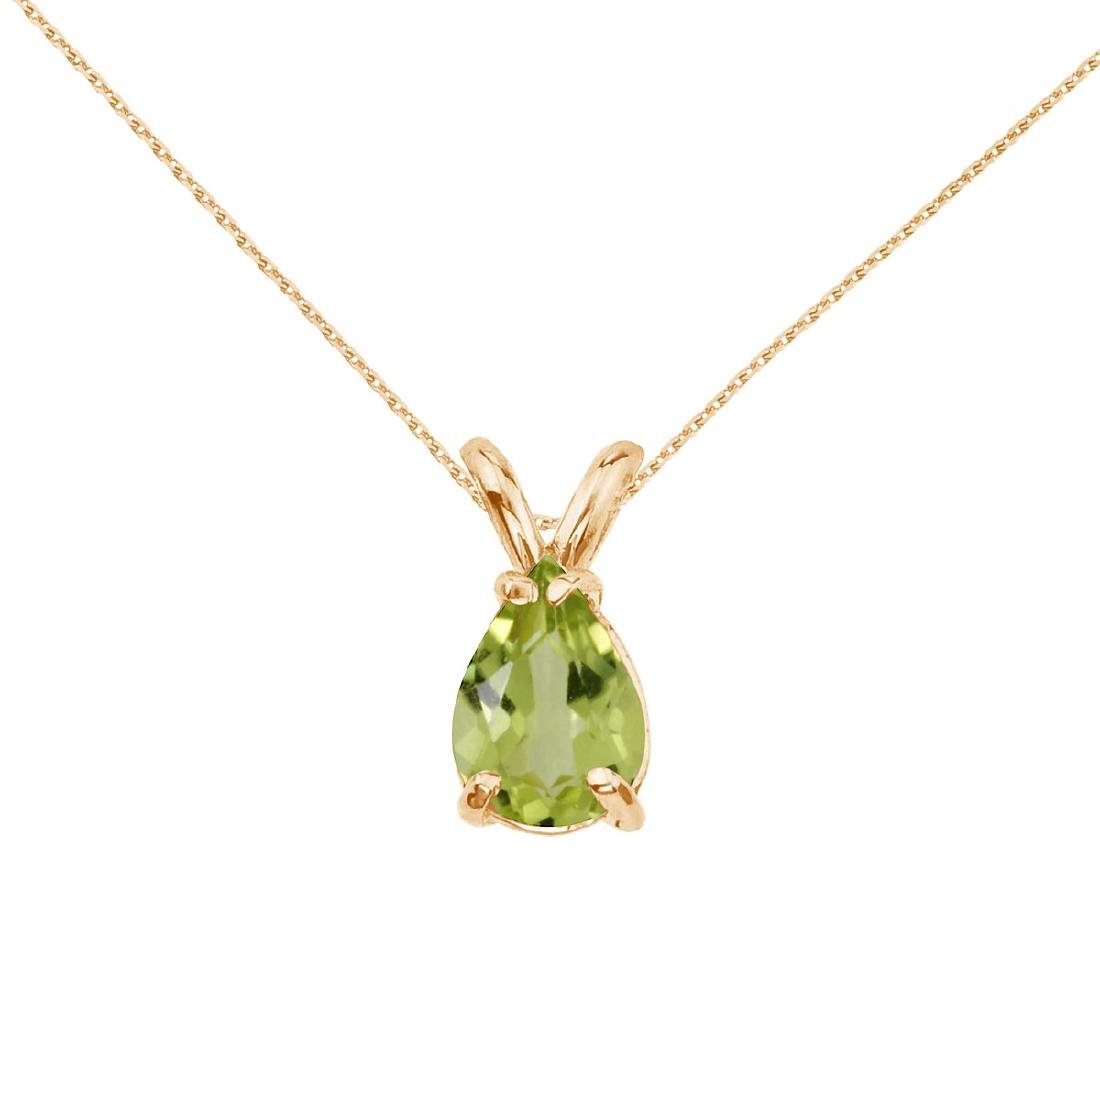 Certified 14k Yellow Gold Pear Shaped Peridot Pendant 0